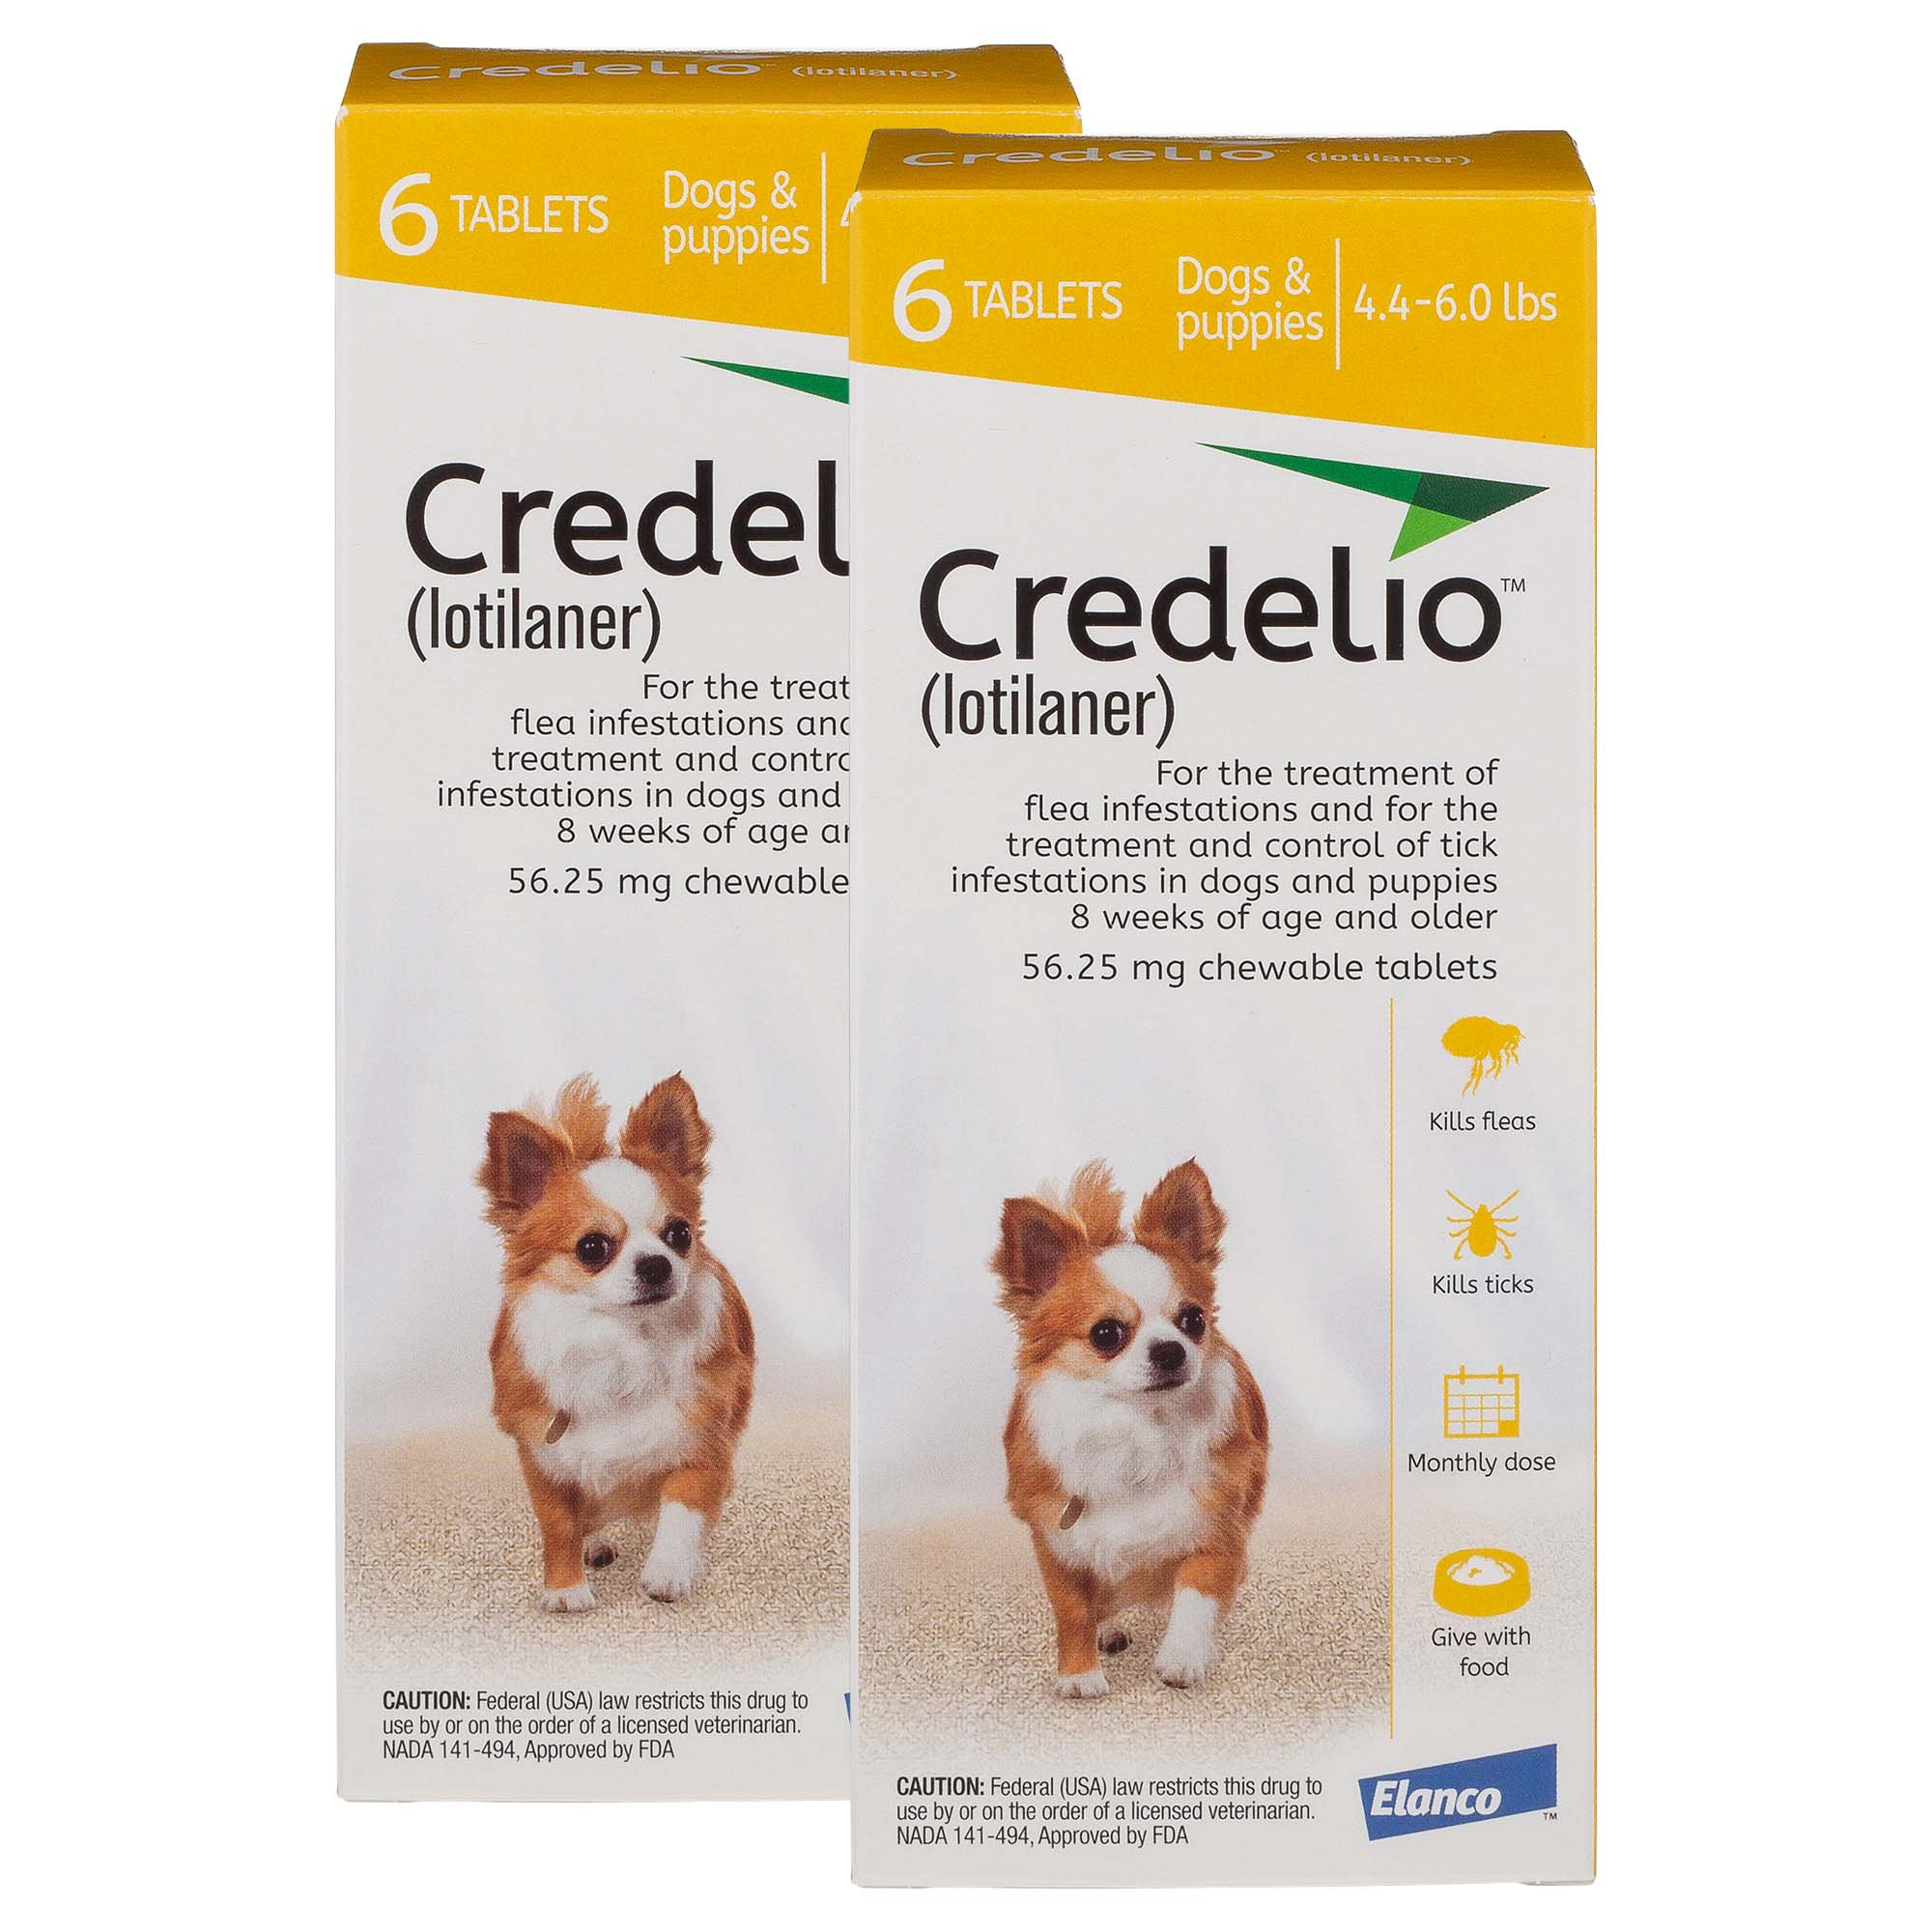 Credelio Chewable Tablets for Dogs 4 4-6 lbs  - Yellow | Petco